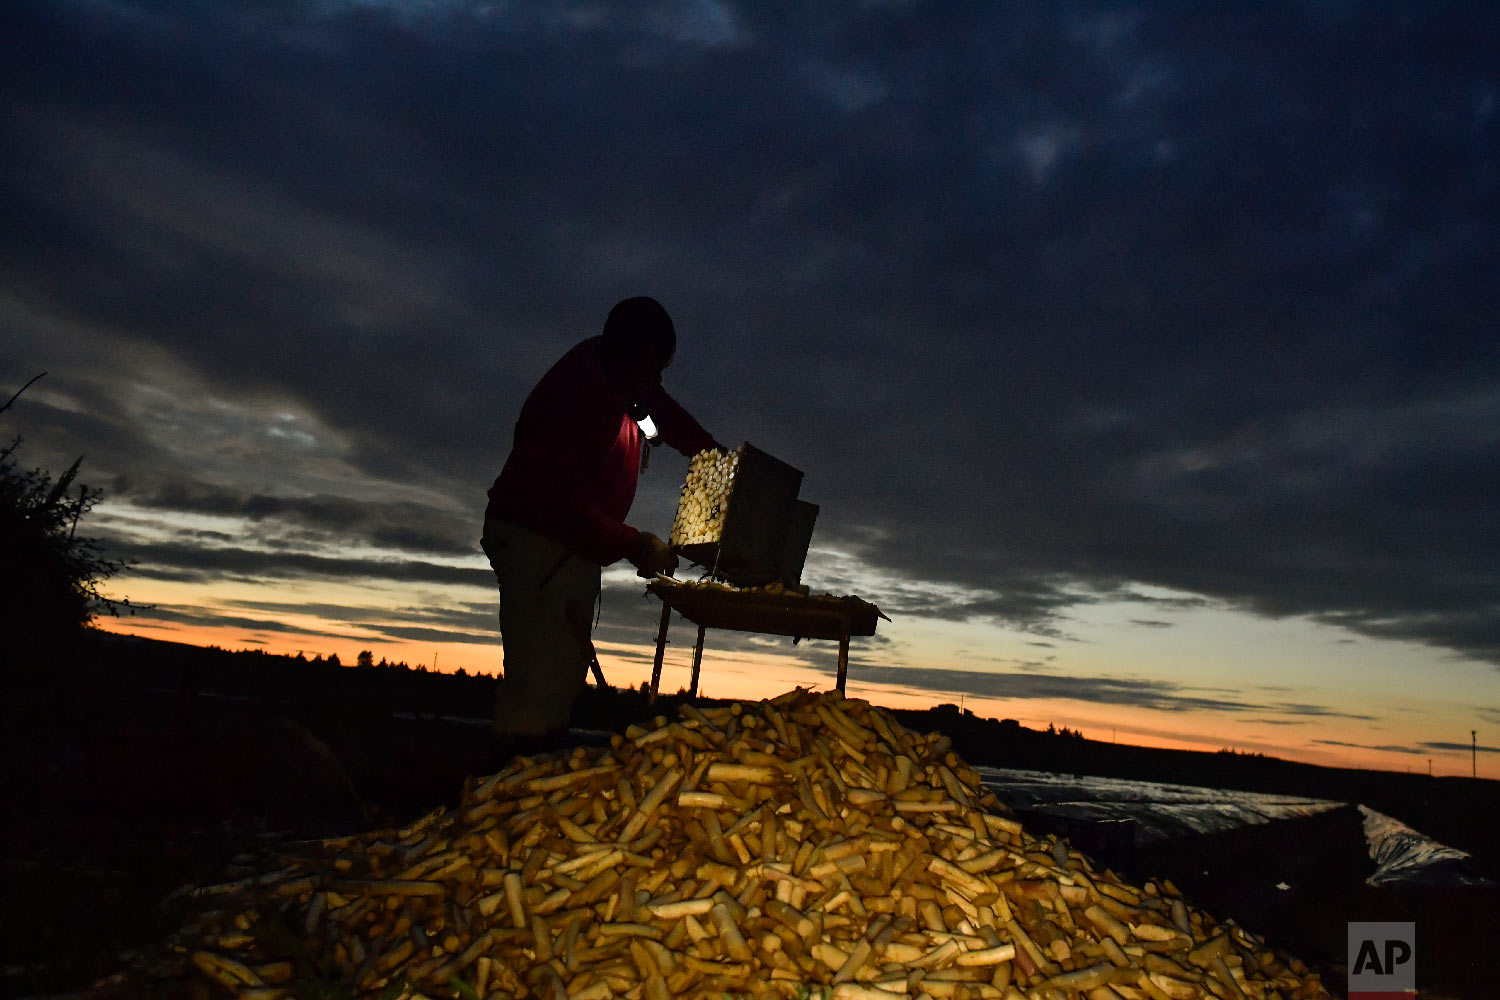 Temporary worker Evin, 25, from Cameroon, cleans white asparagus after collecting them from a field in Caparroso, around 85 km (52 miles) from Pamplona, northern Spain on Thursday, May 31, 2018.(AP Photo/Alvaro Barrientos)